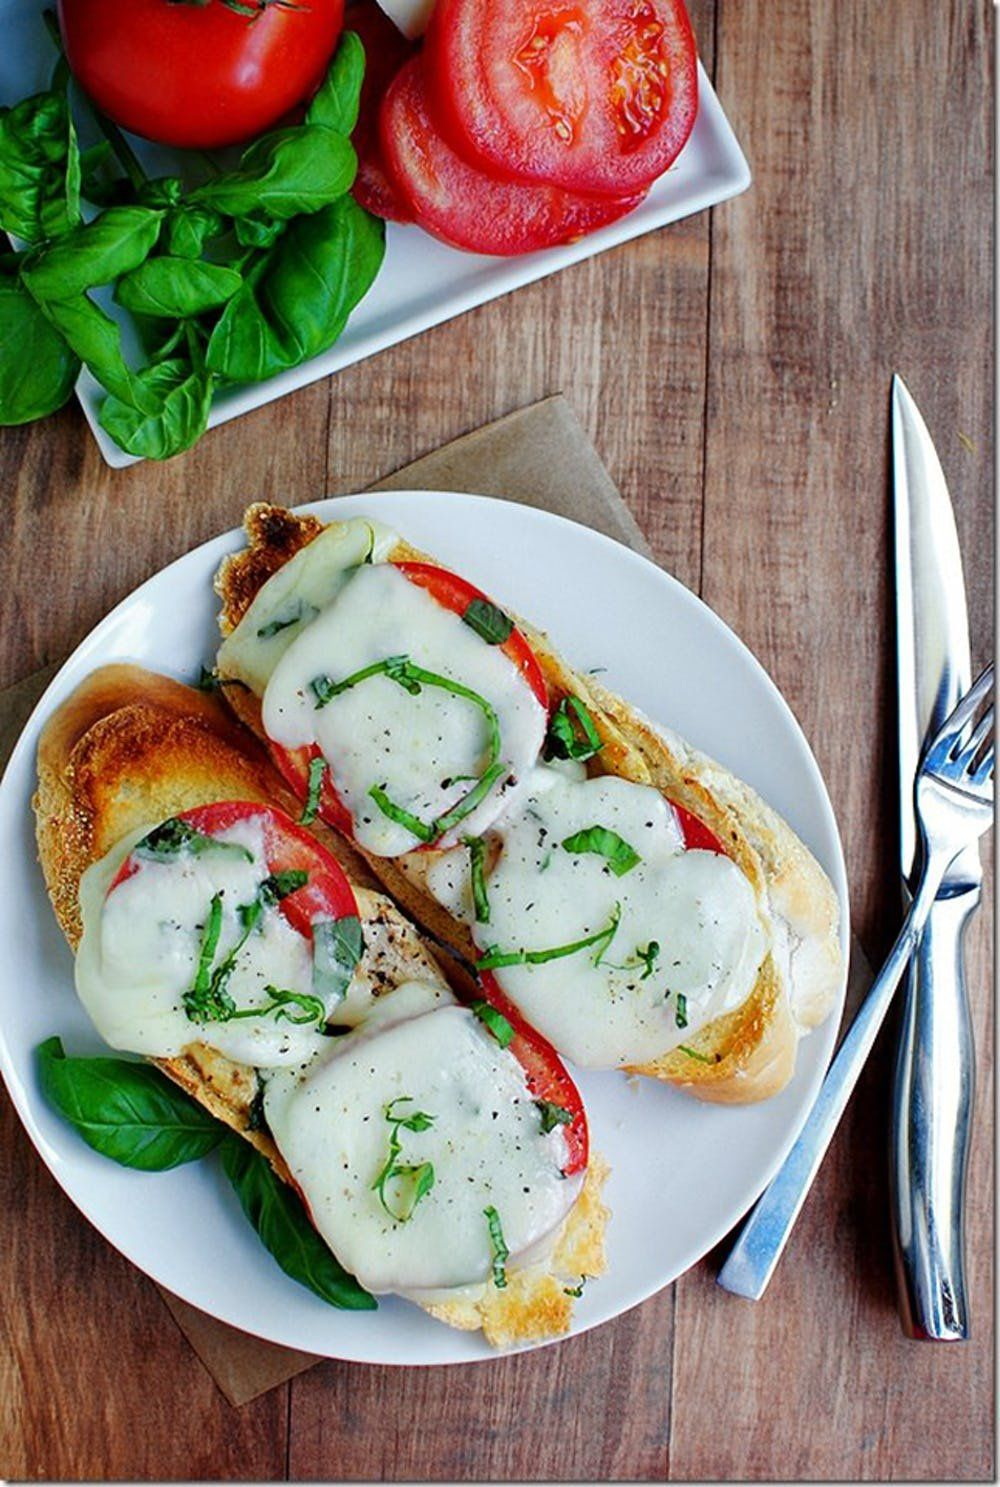 35 easy lunch recipes you can make in 5 minutes or less